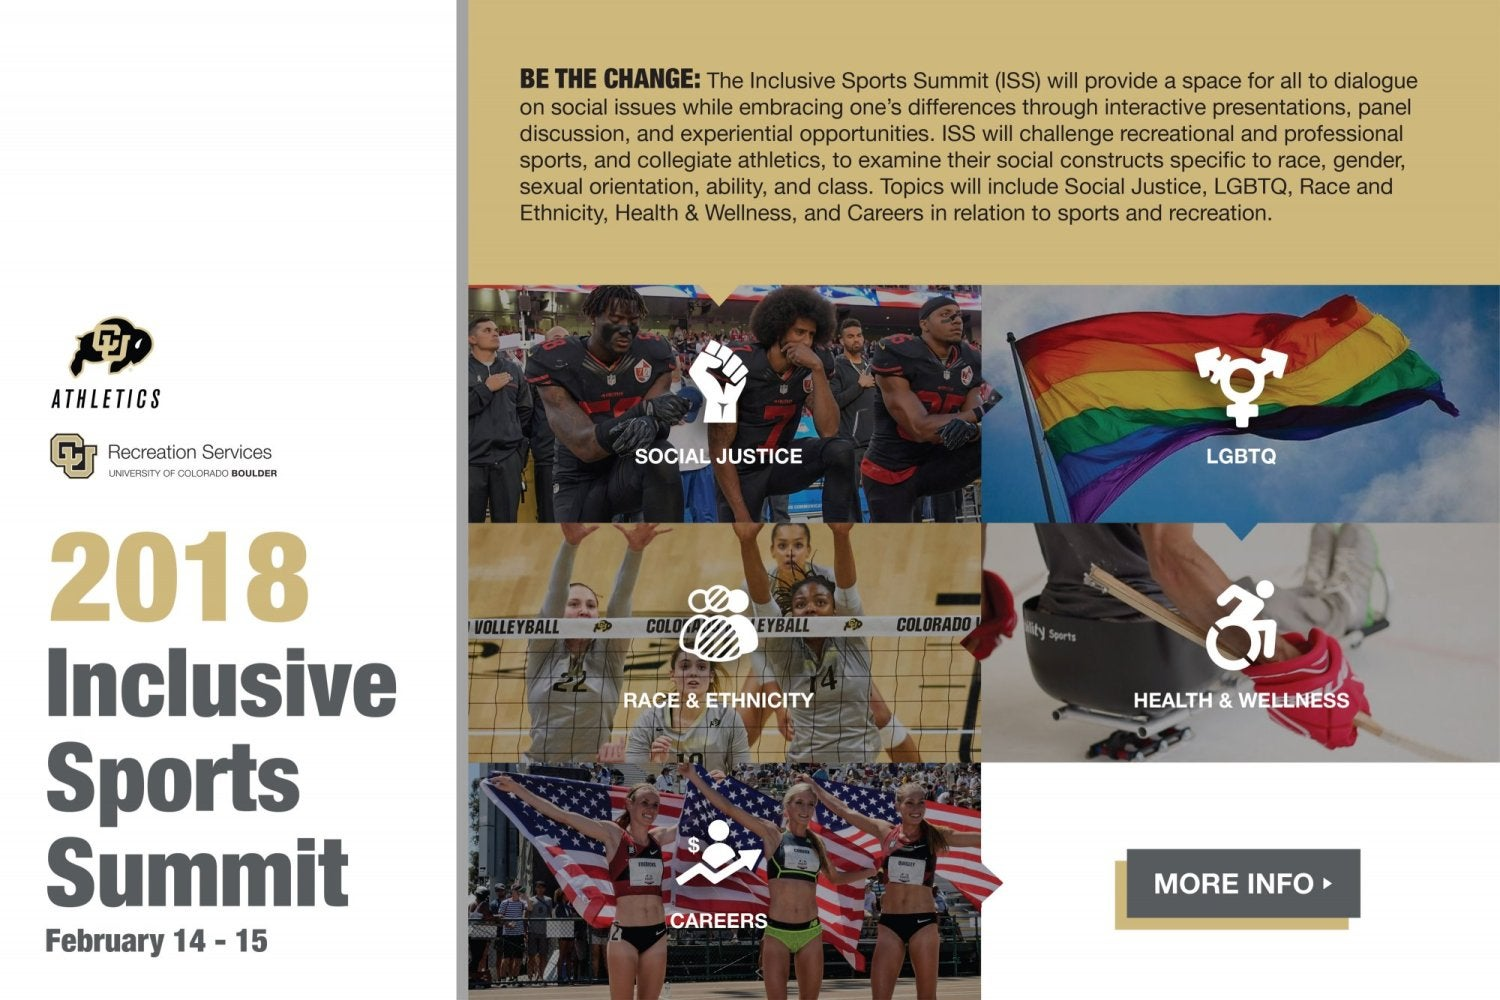 Inclusive Sports Summit.  Click here for more information